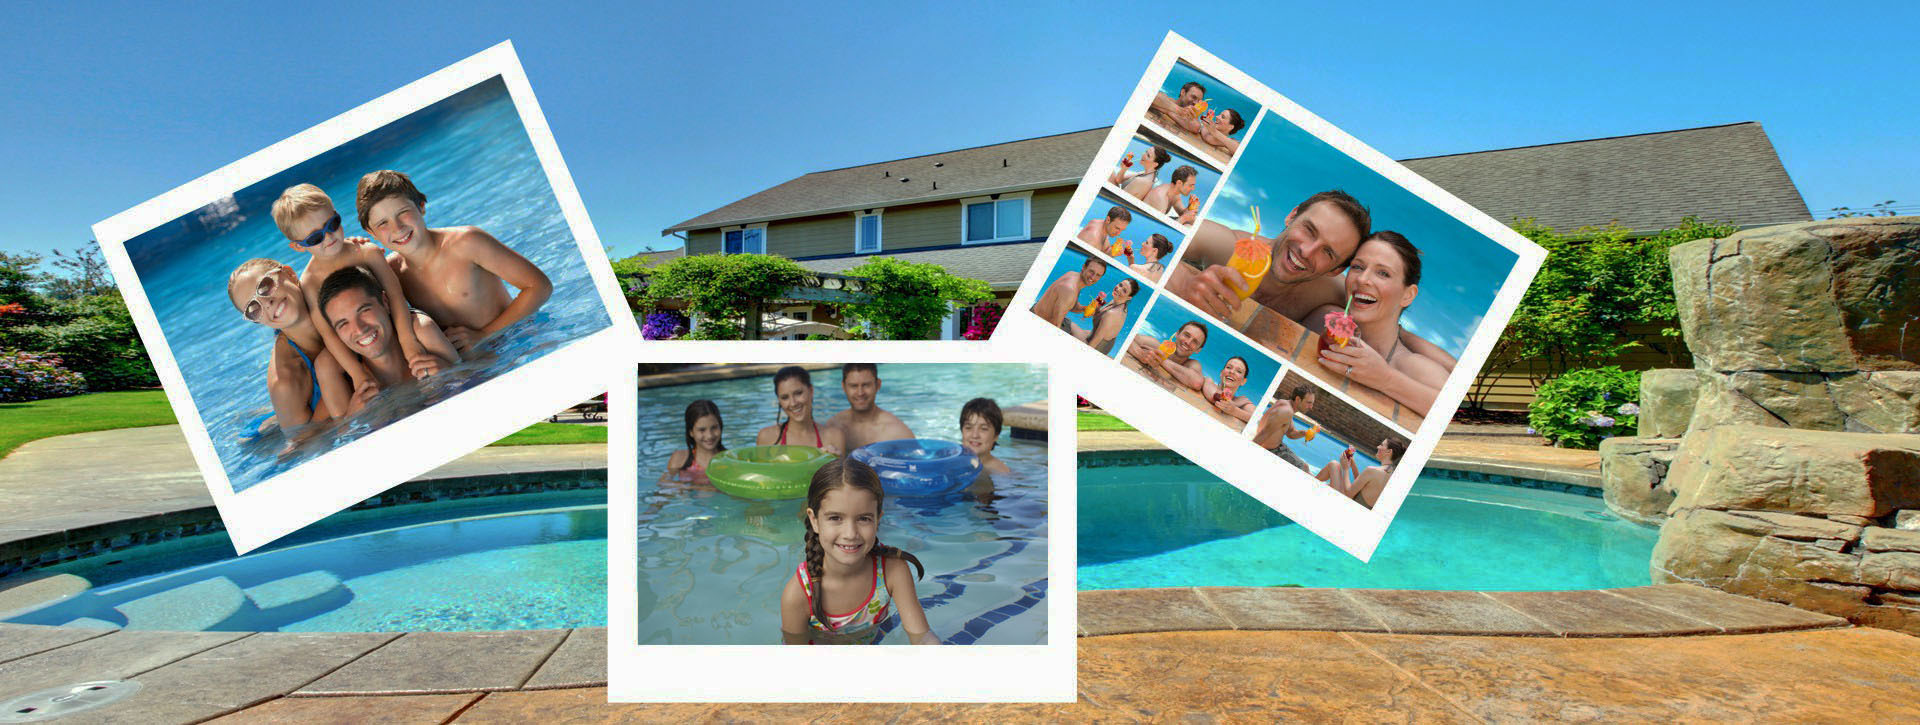 family having fun in swimming pool Visalia